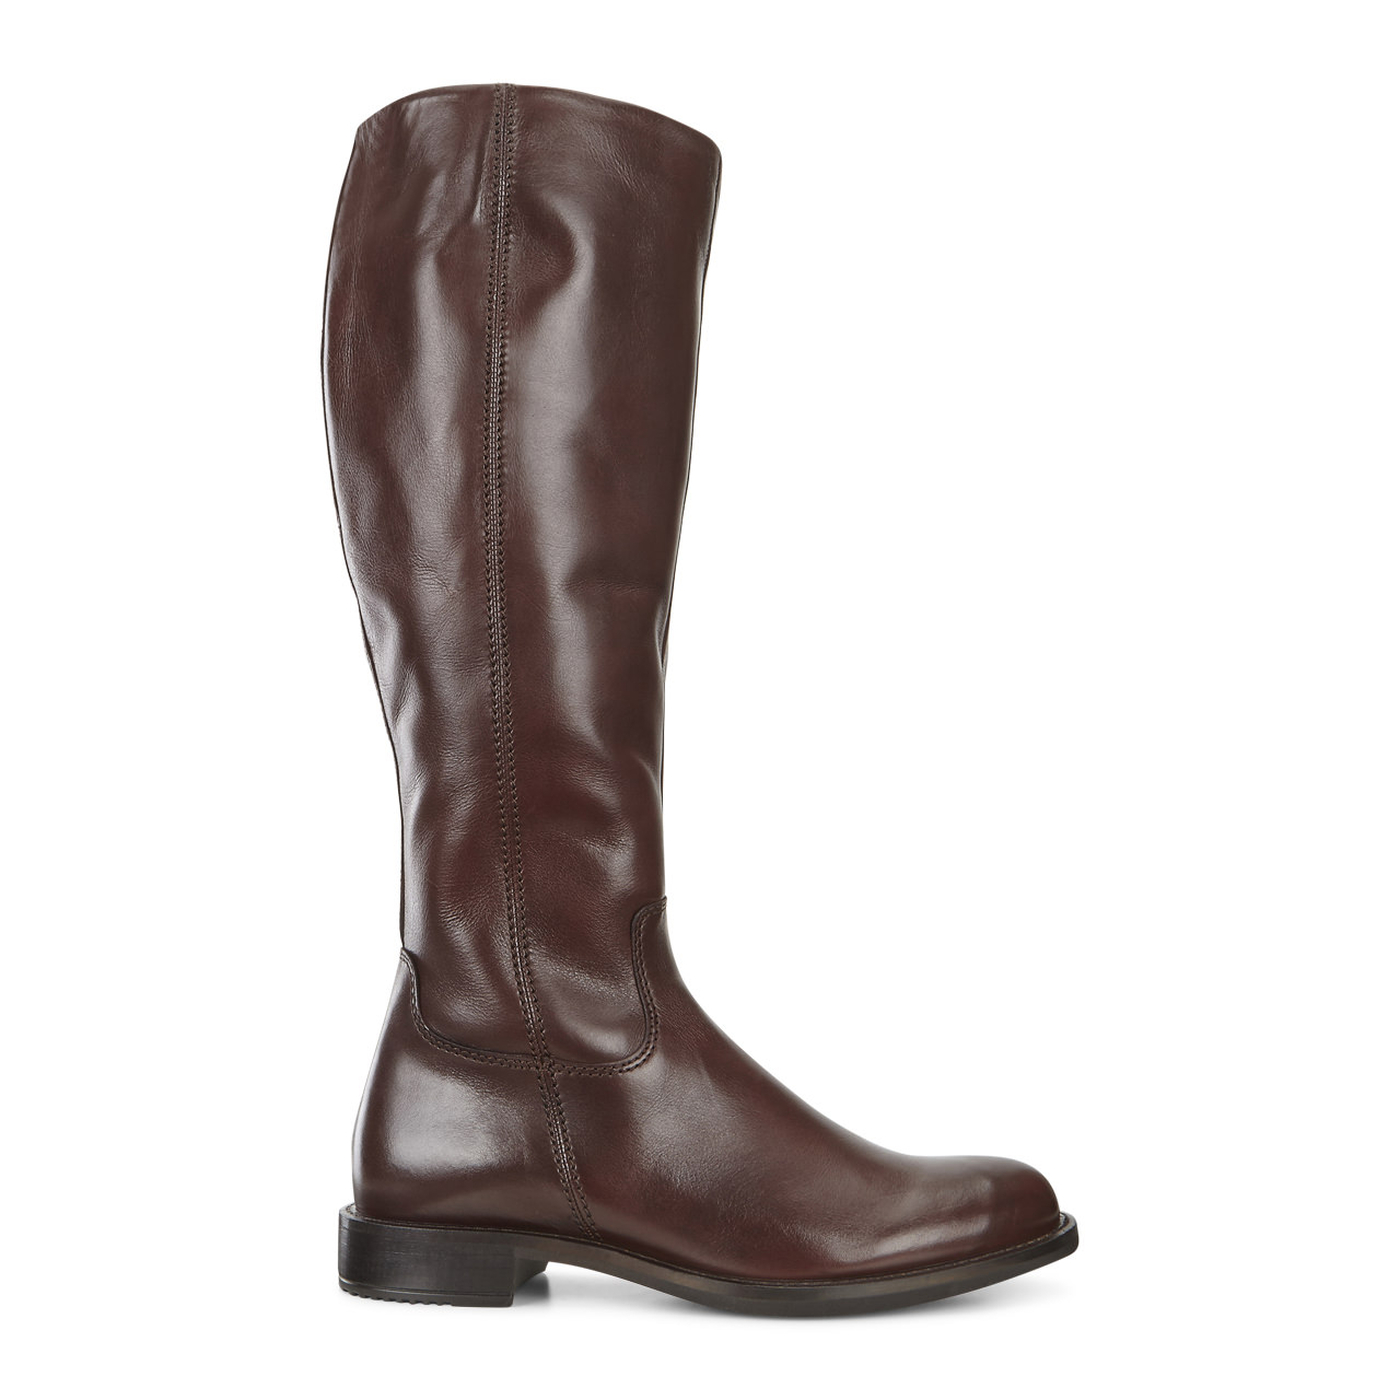 ECCO Sartorelle 25 Riding Boot